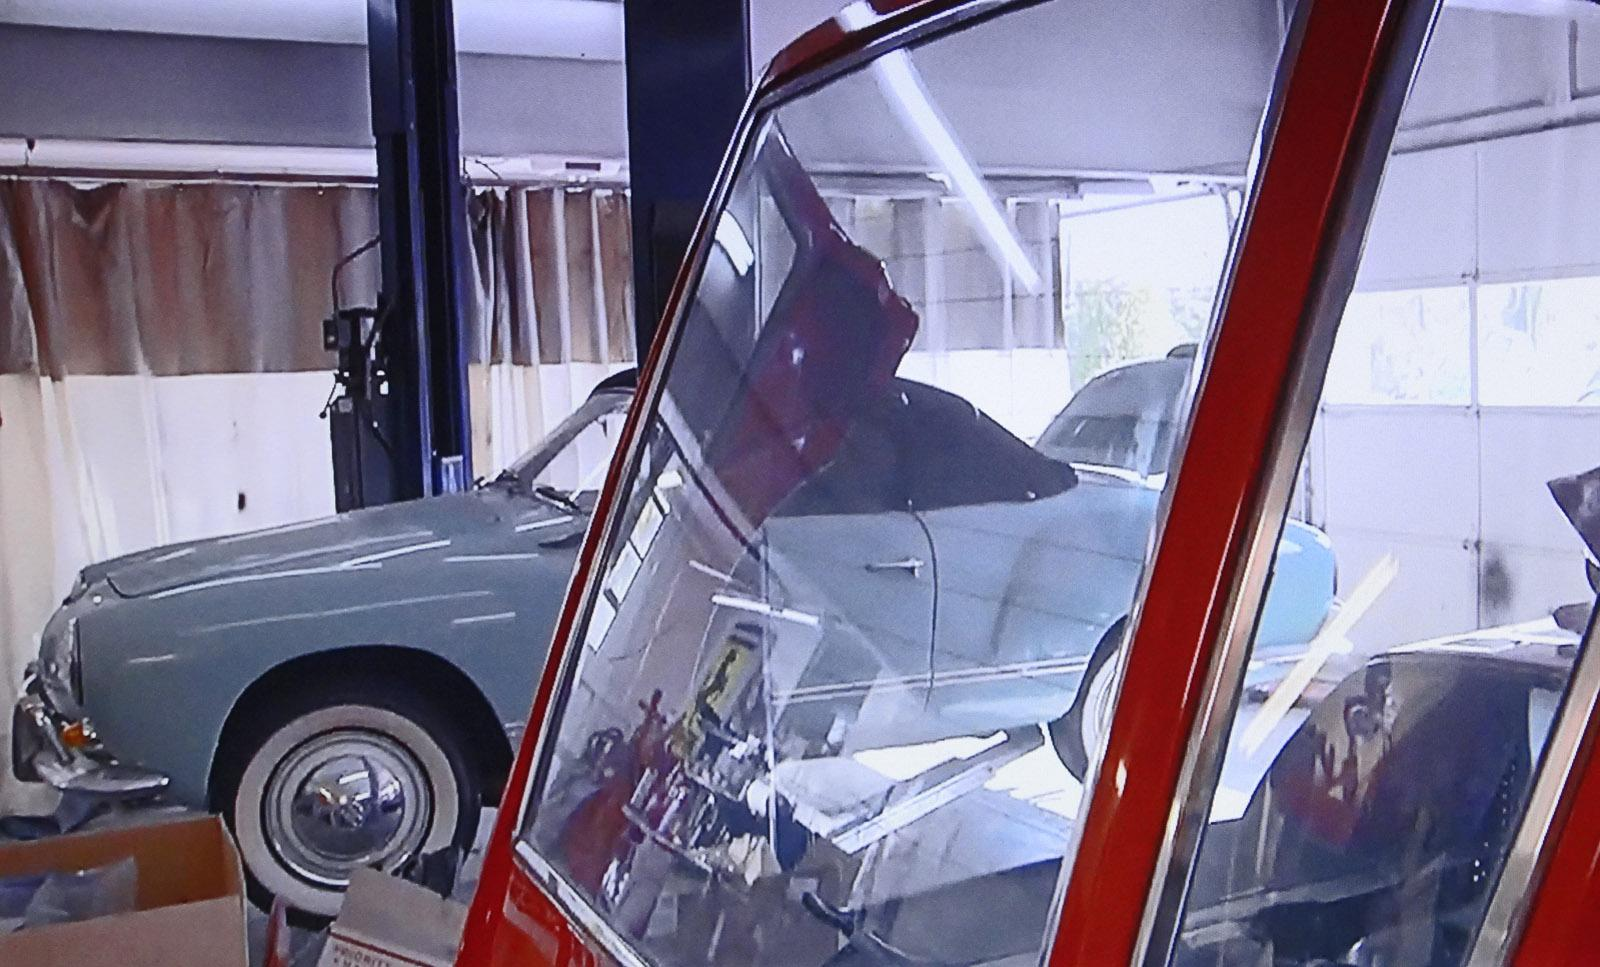 Karmann Ghia seen in episode of 'Chasing Classic Cars'